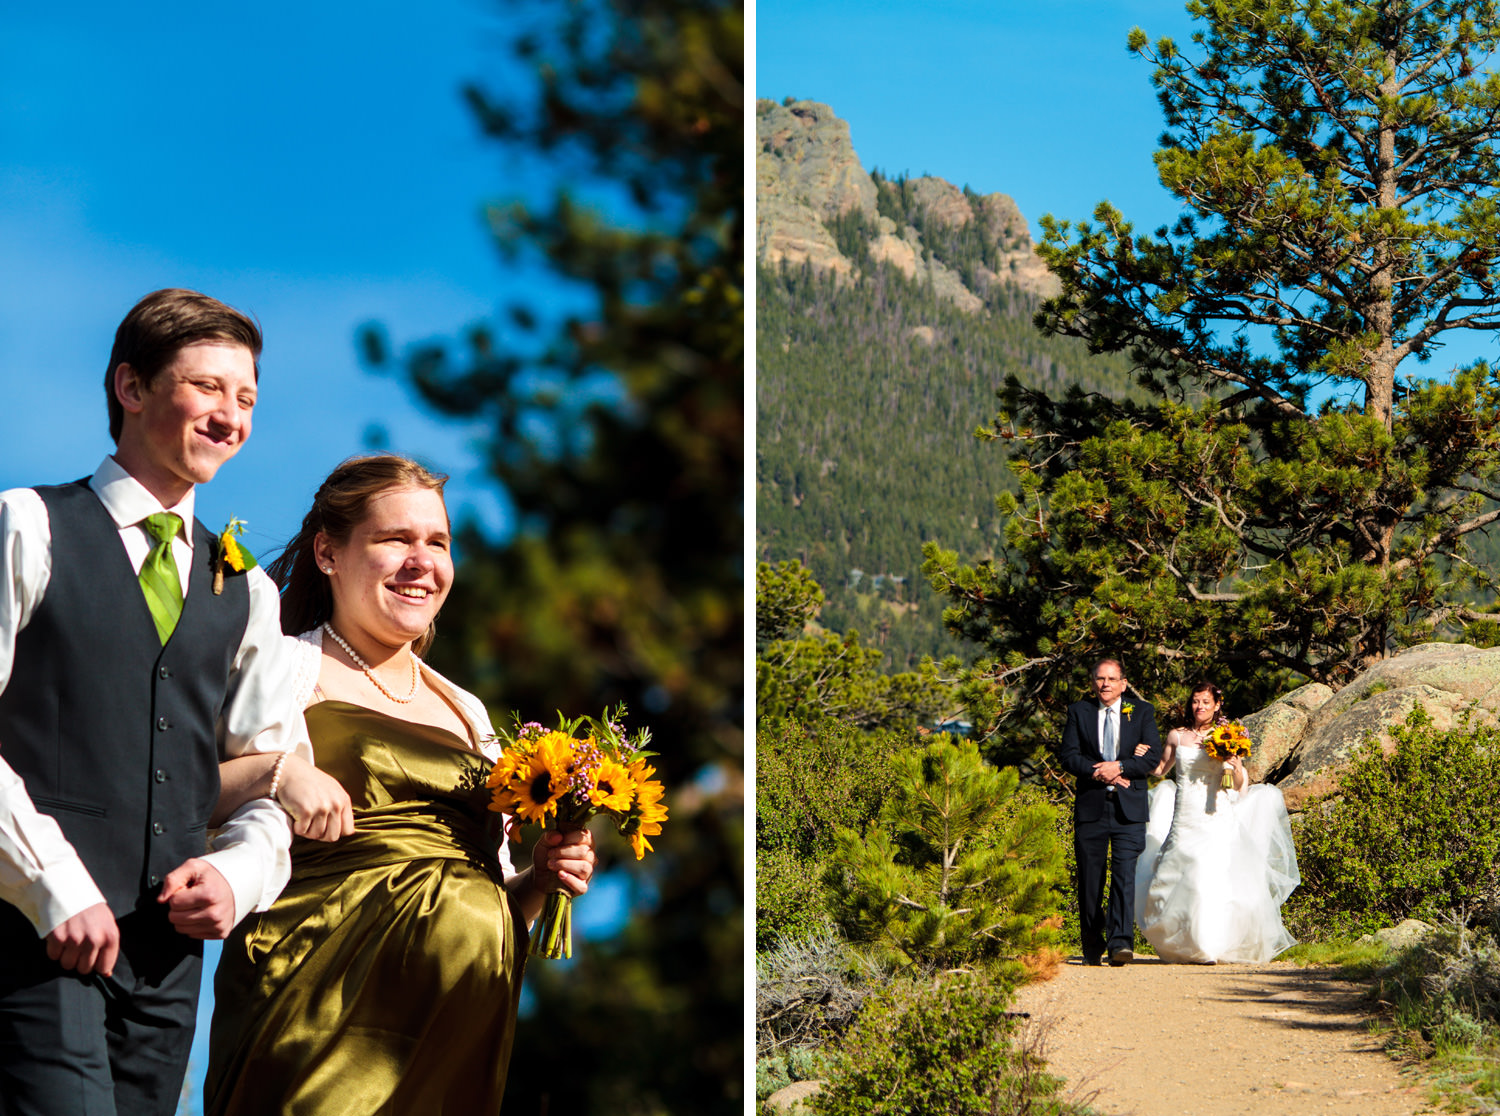 ymca-of-the-rockies-wedding-estes-park-046.jpg